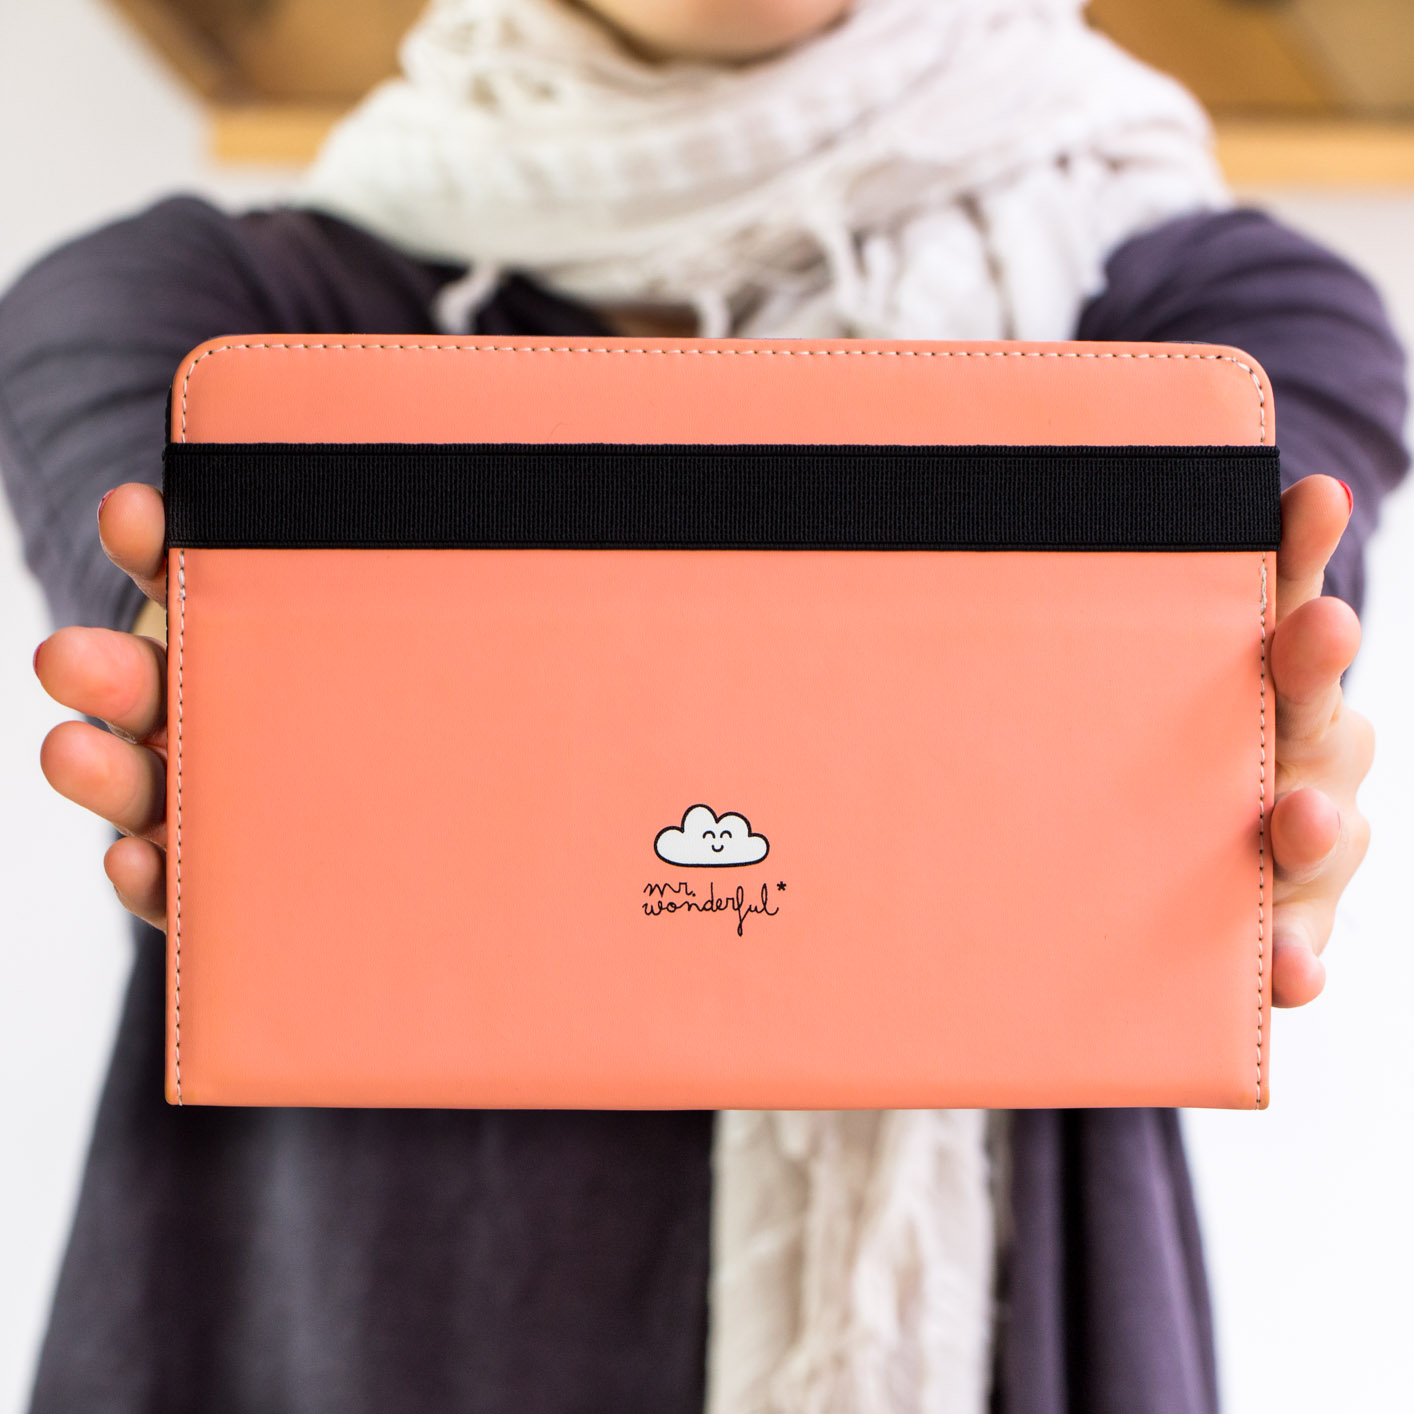 mrwonderful_MRUNI004_funda-salmon-tablet_7-7,9_no-hay-nada-imposible-46